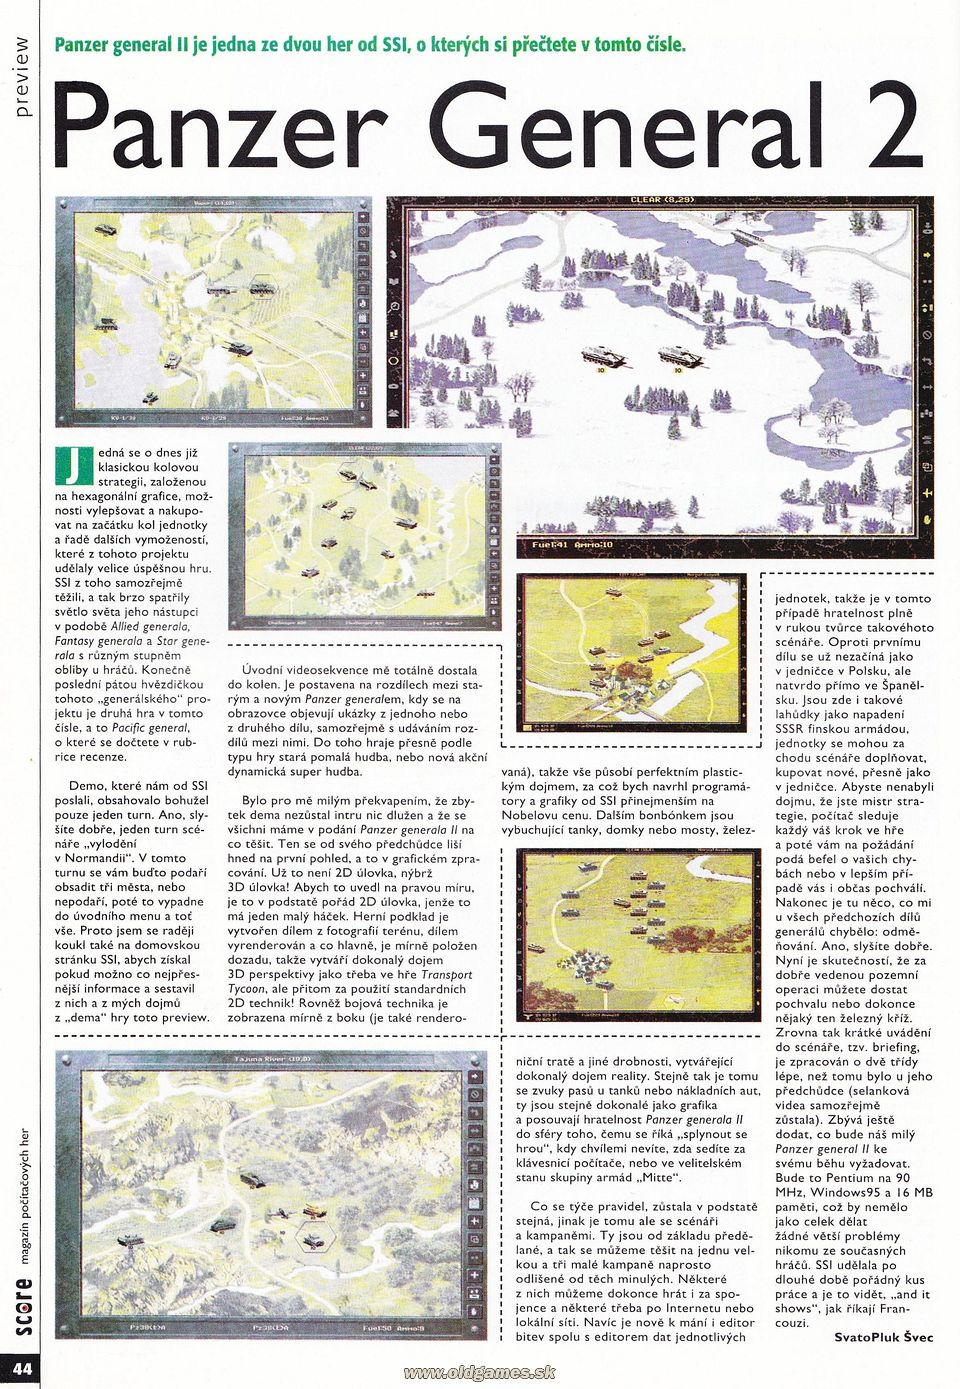 Preview: Panzer General 2